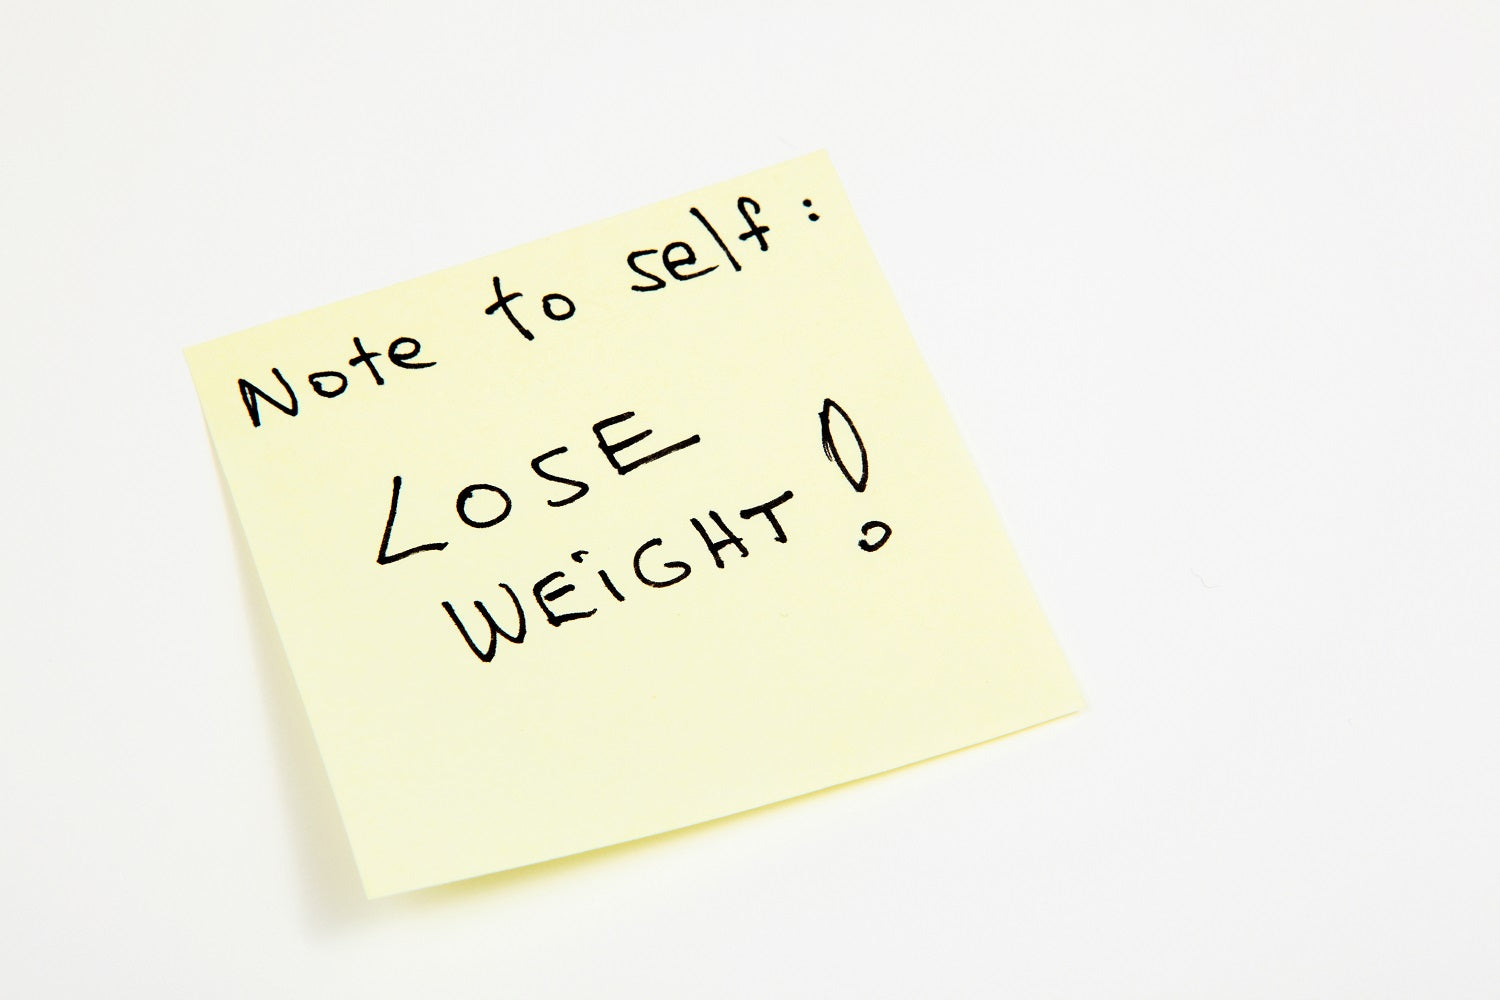 Note to self to lose weight, post-it note